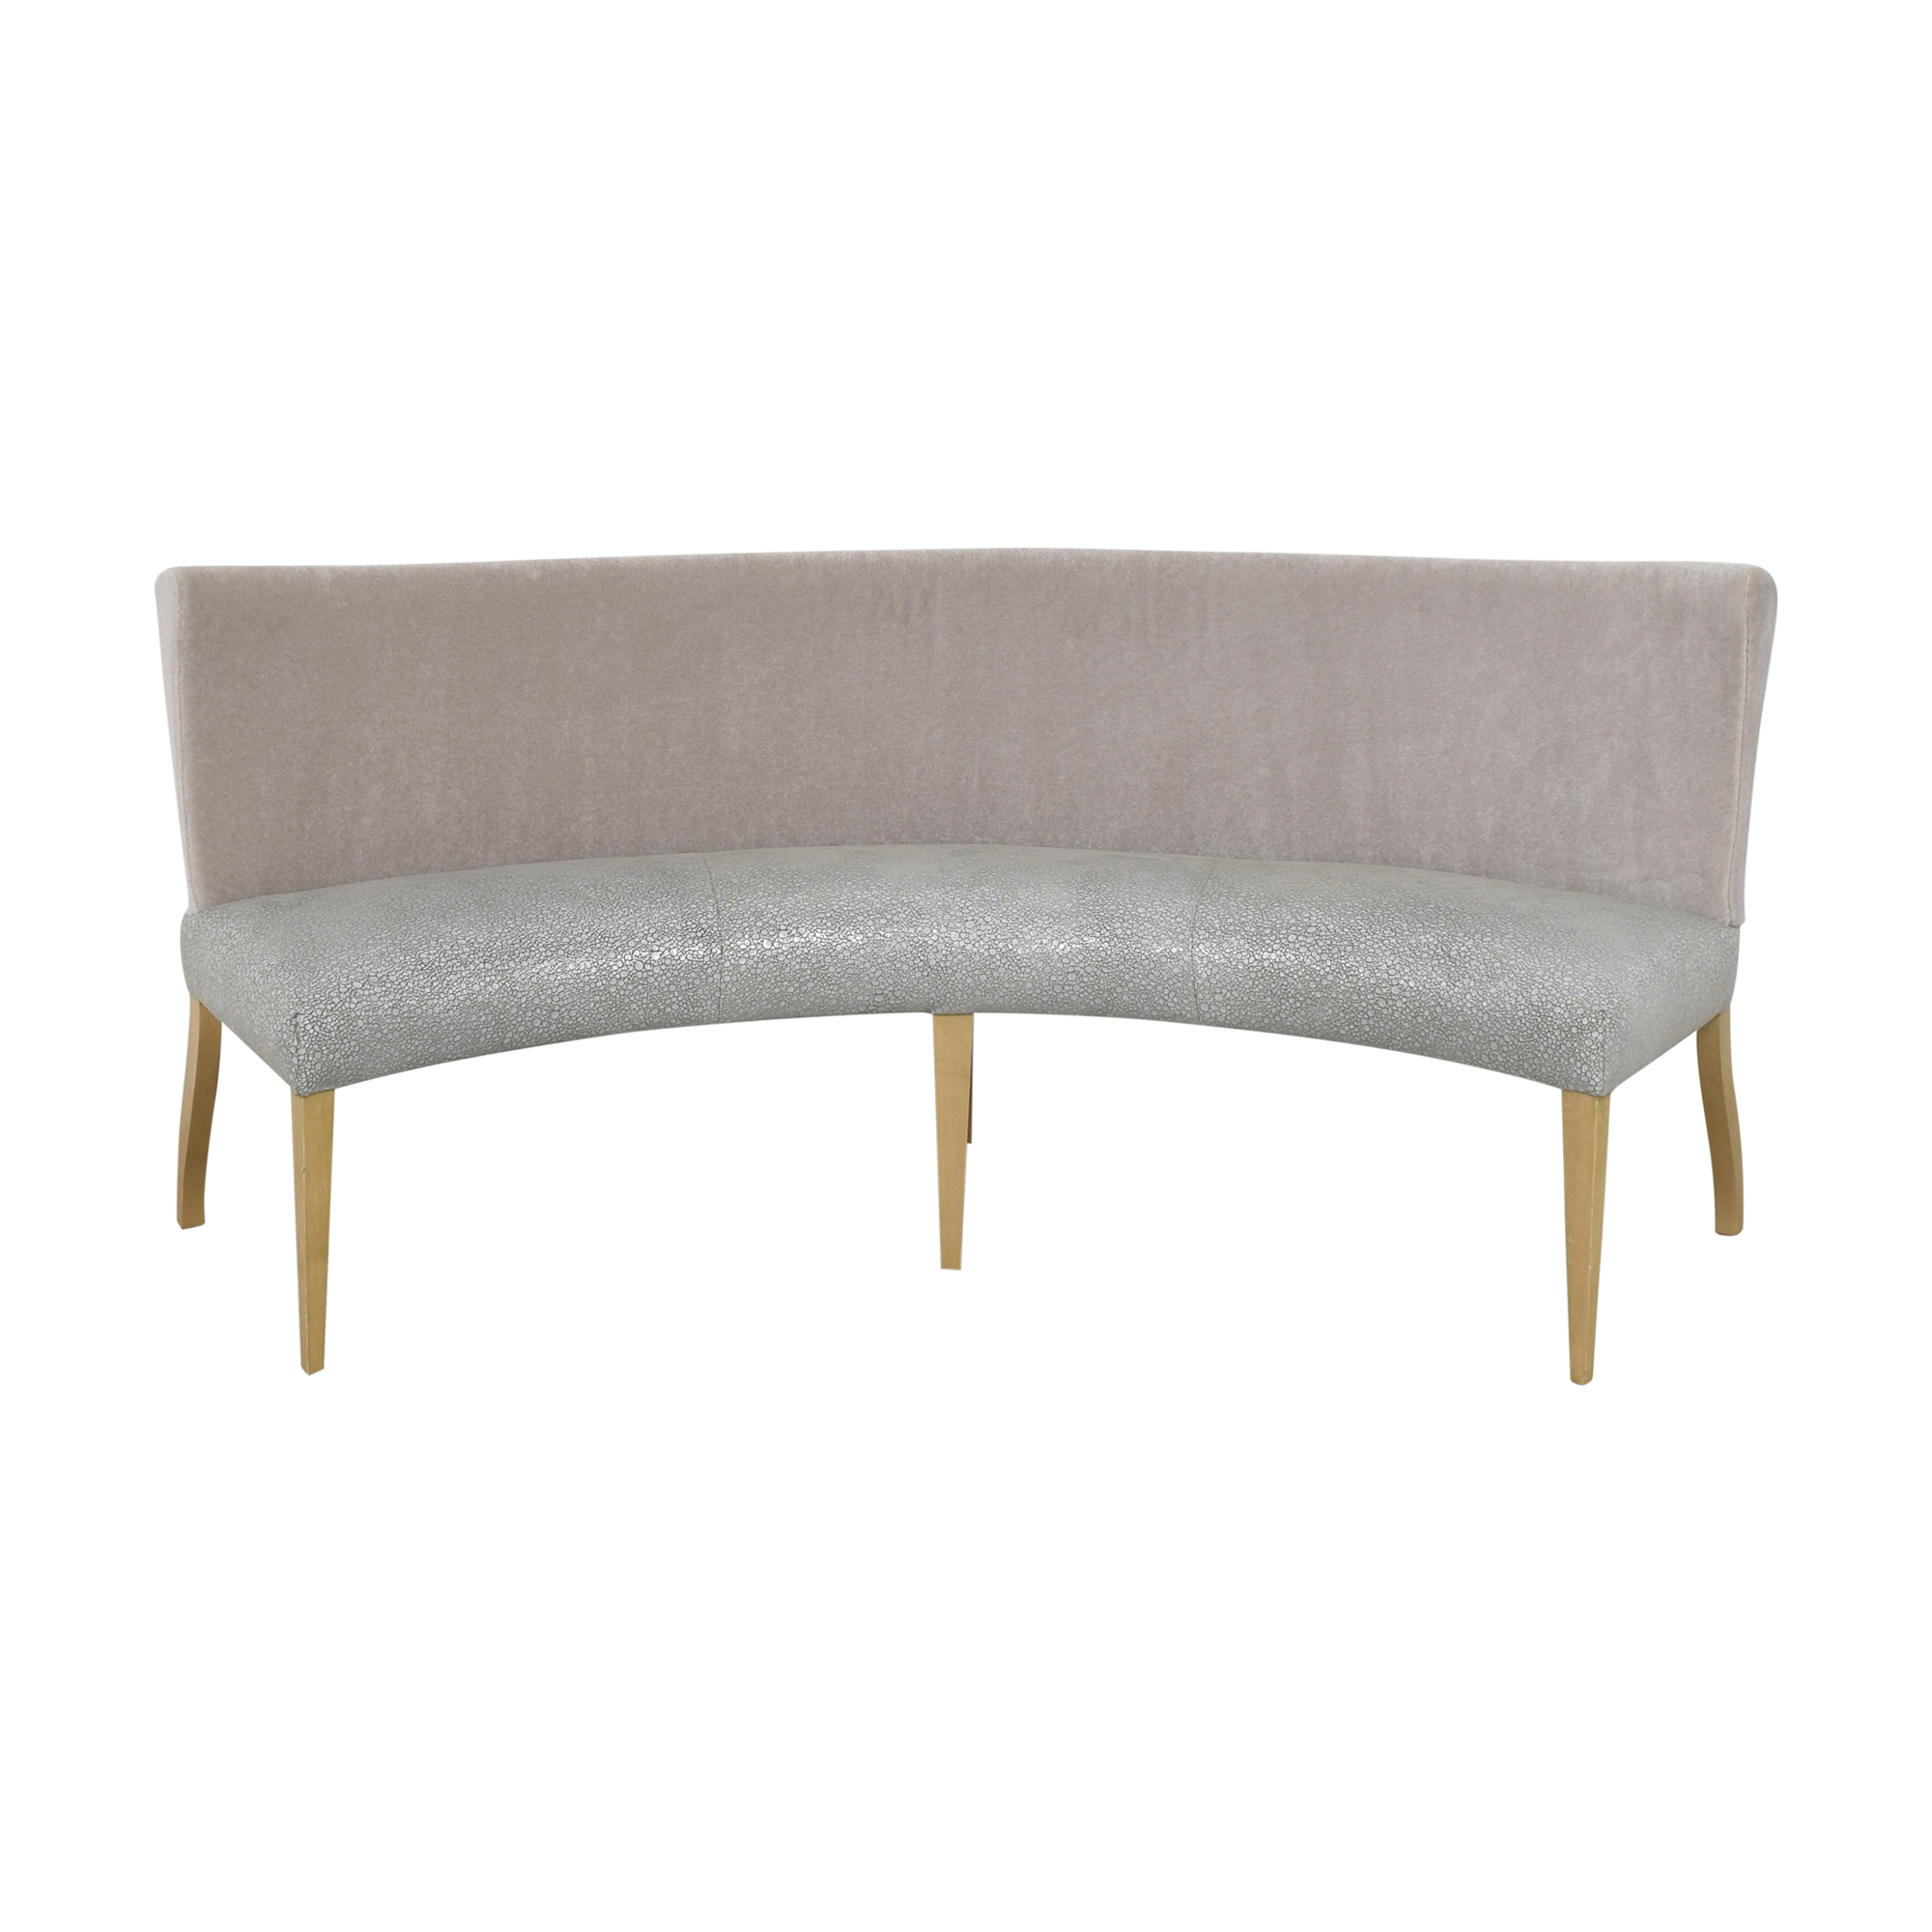 Benjamin Noriega-Ortiz Custom Curved Dining Bench ct